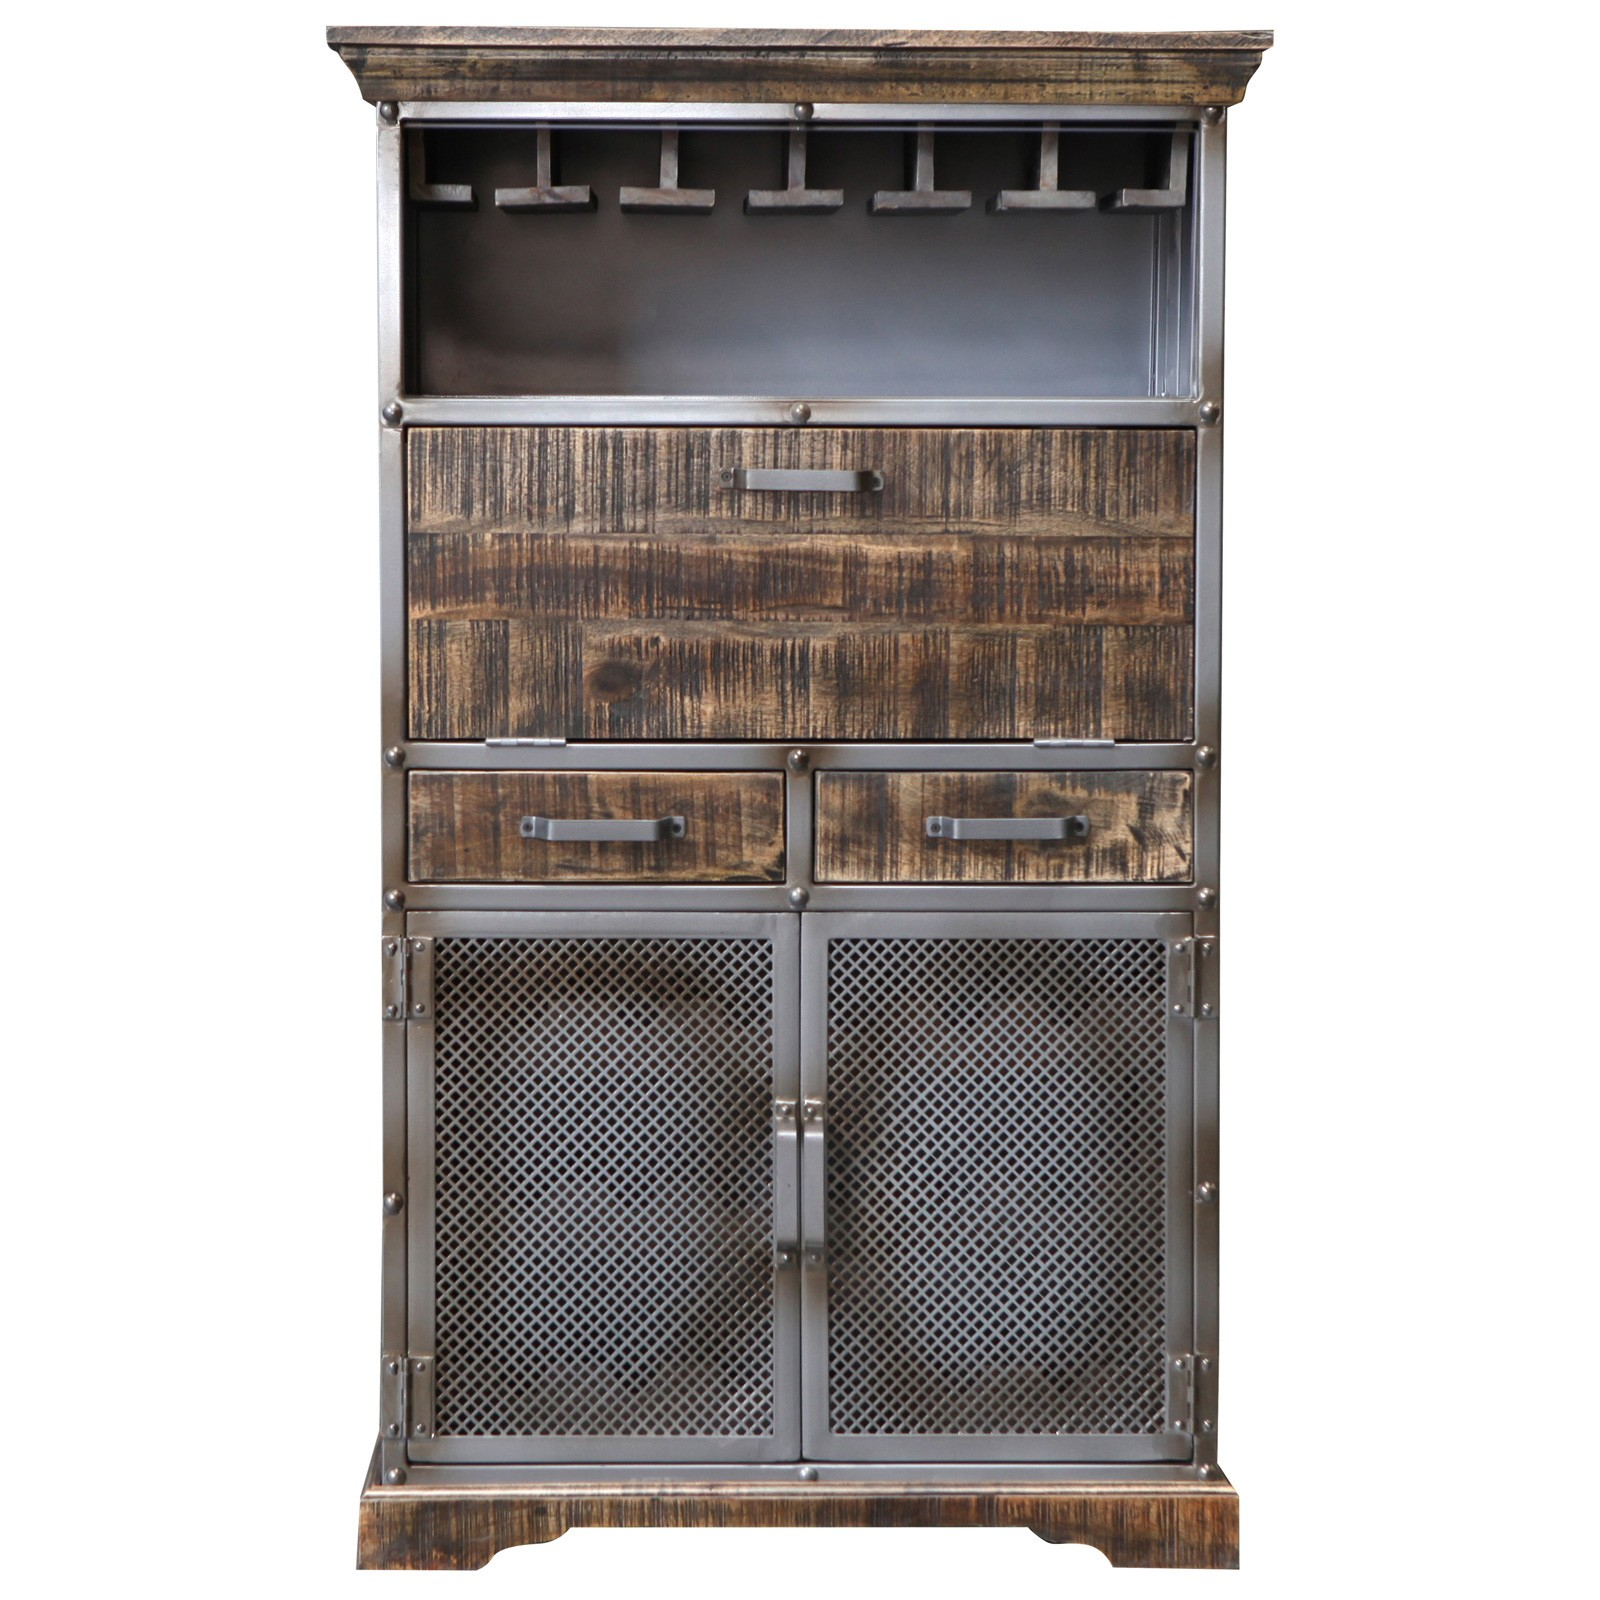 Armidale Industrial Timber & Metal Wine Rack